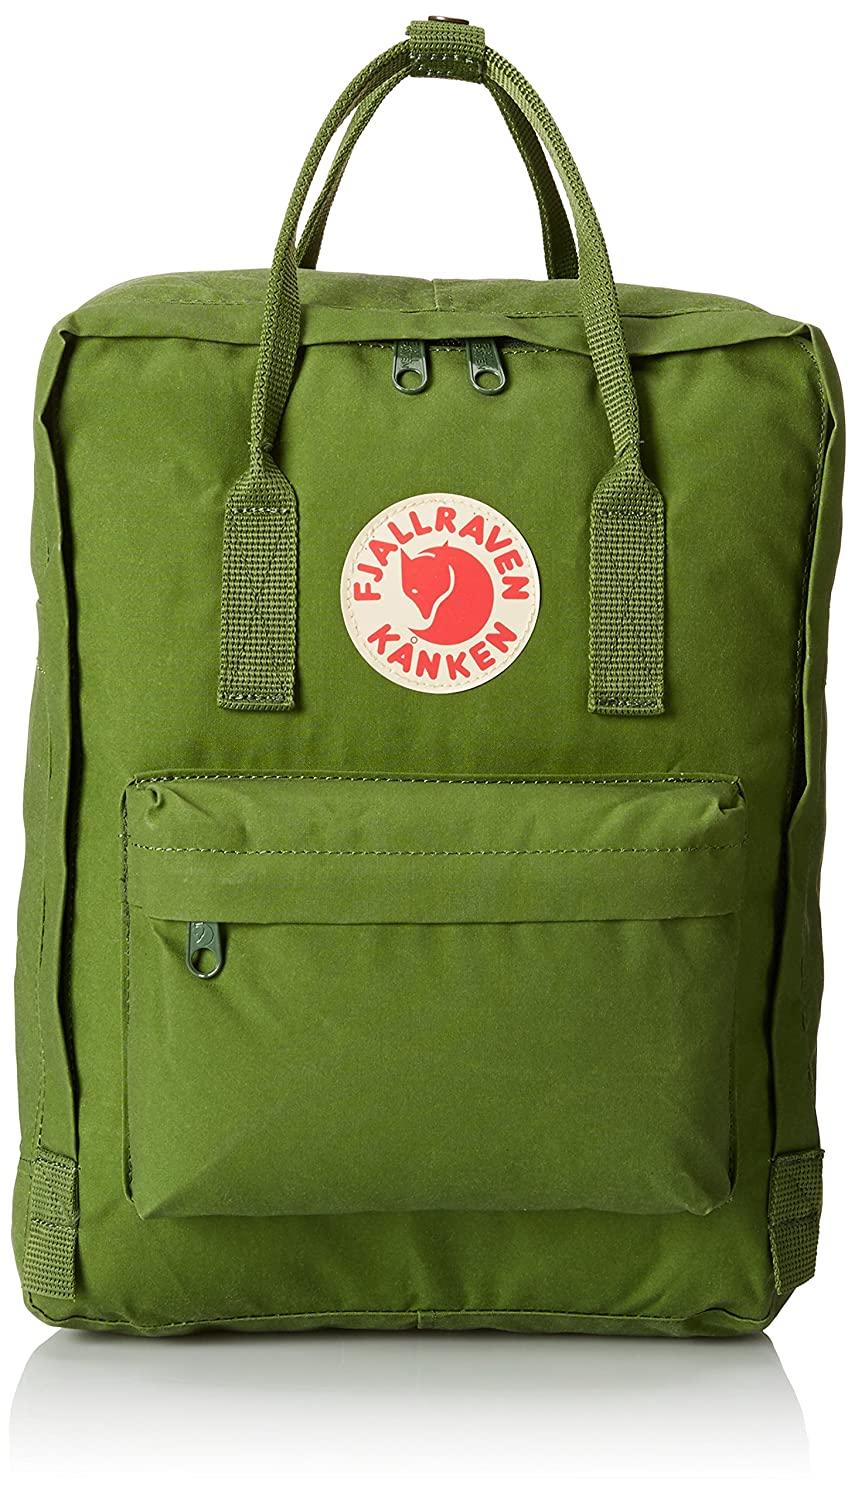 fjallraven kanken amazon uk